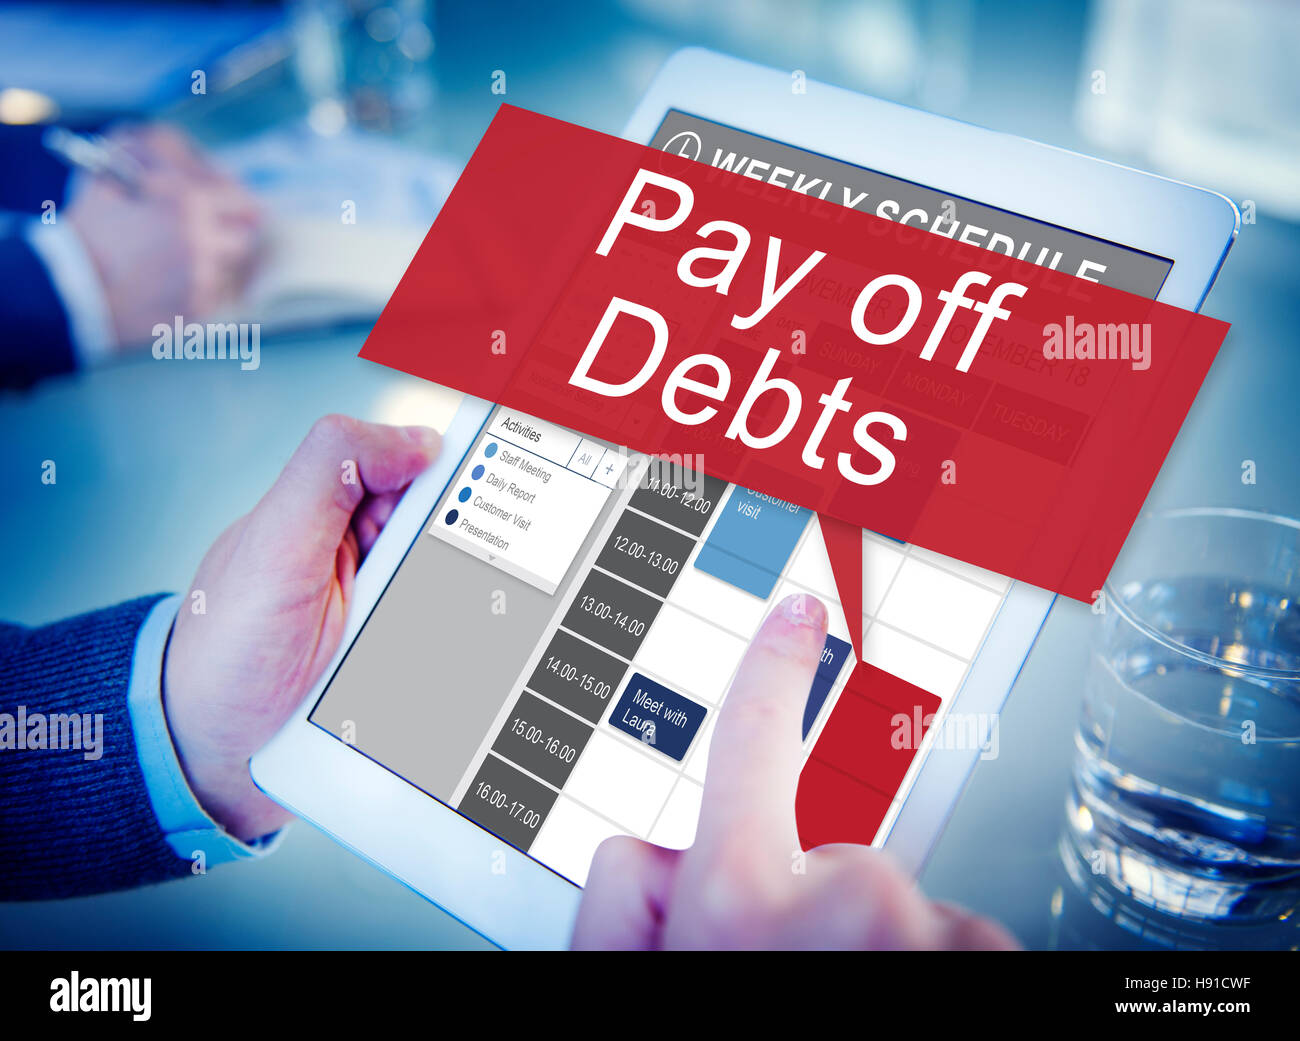 Unsecured payday loans south africa image 4